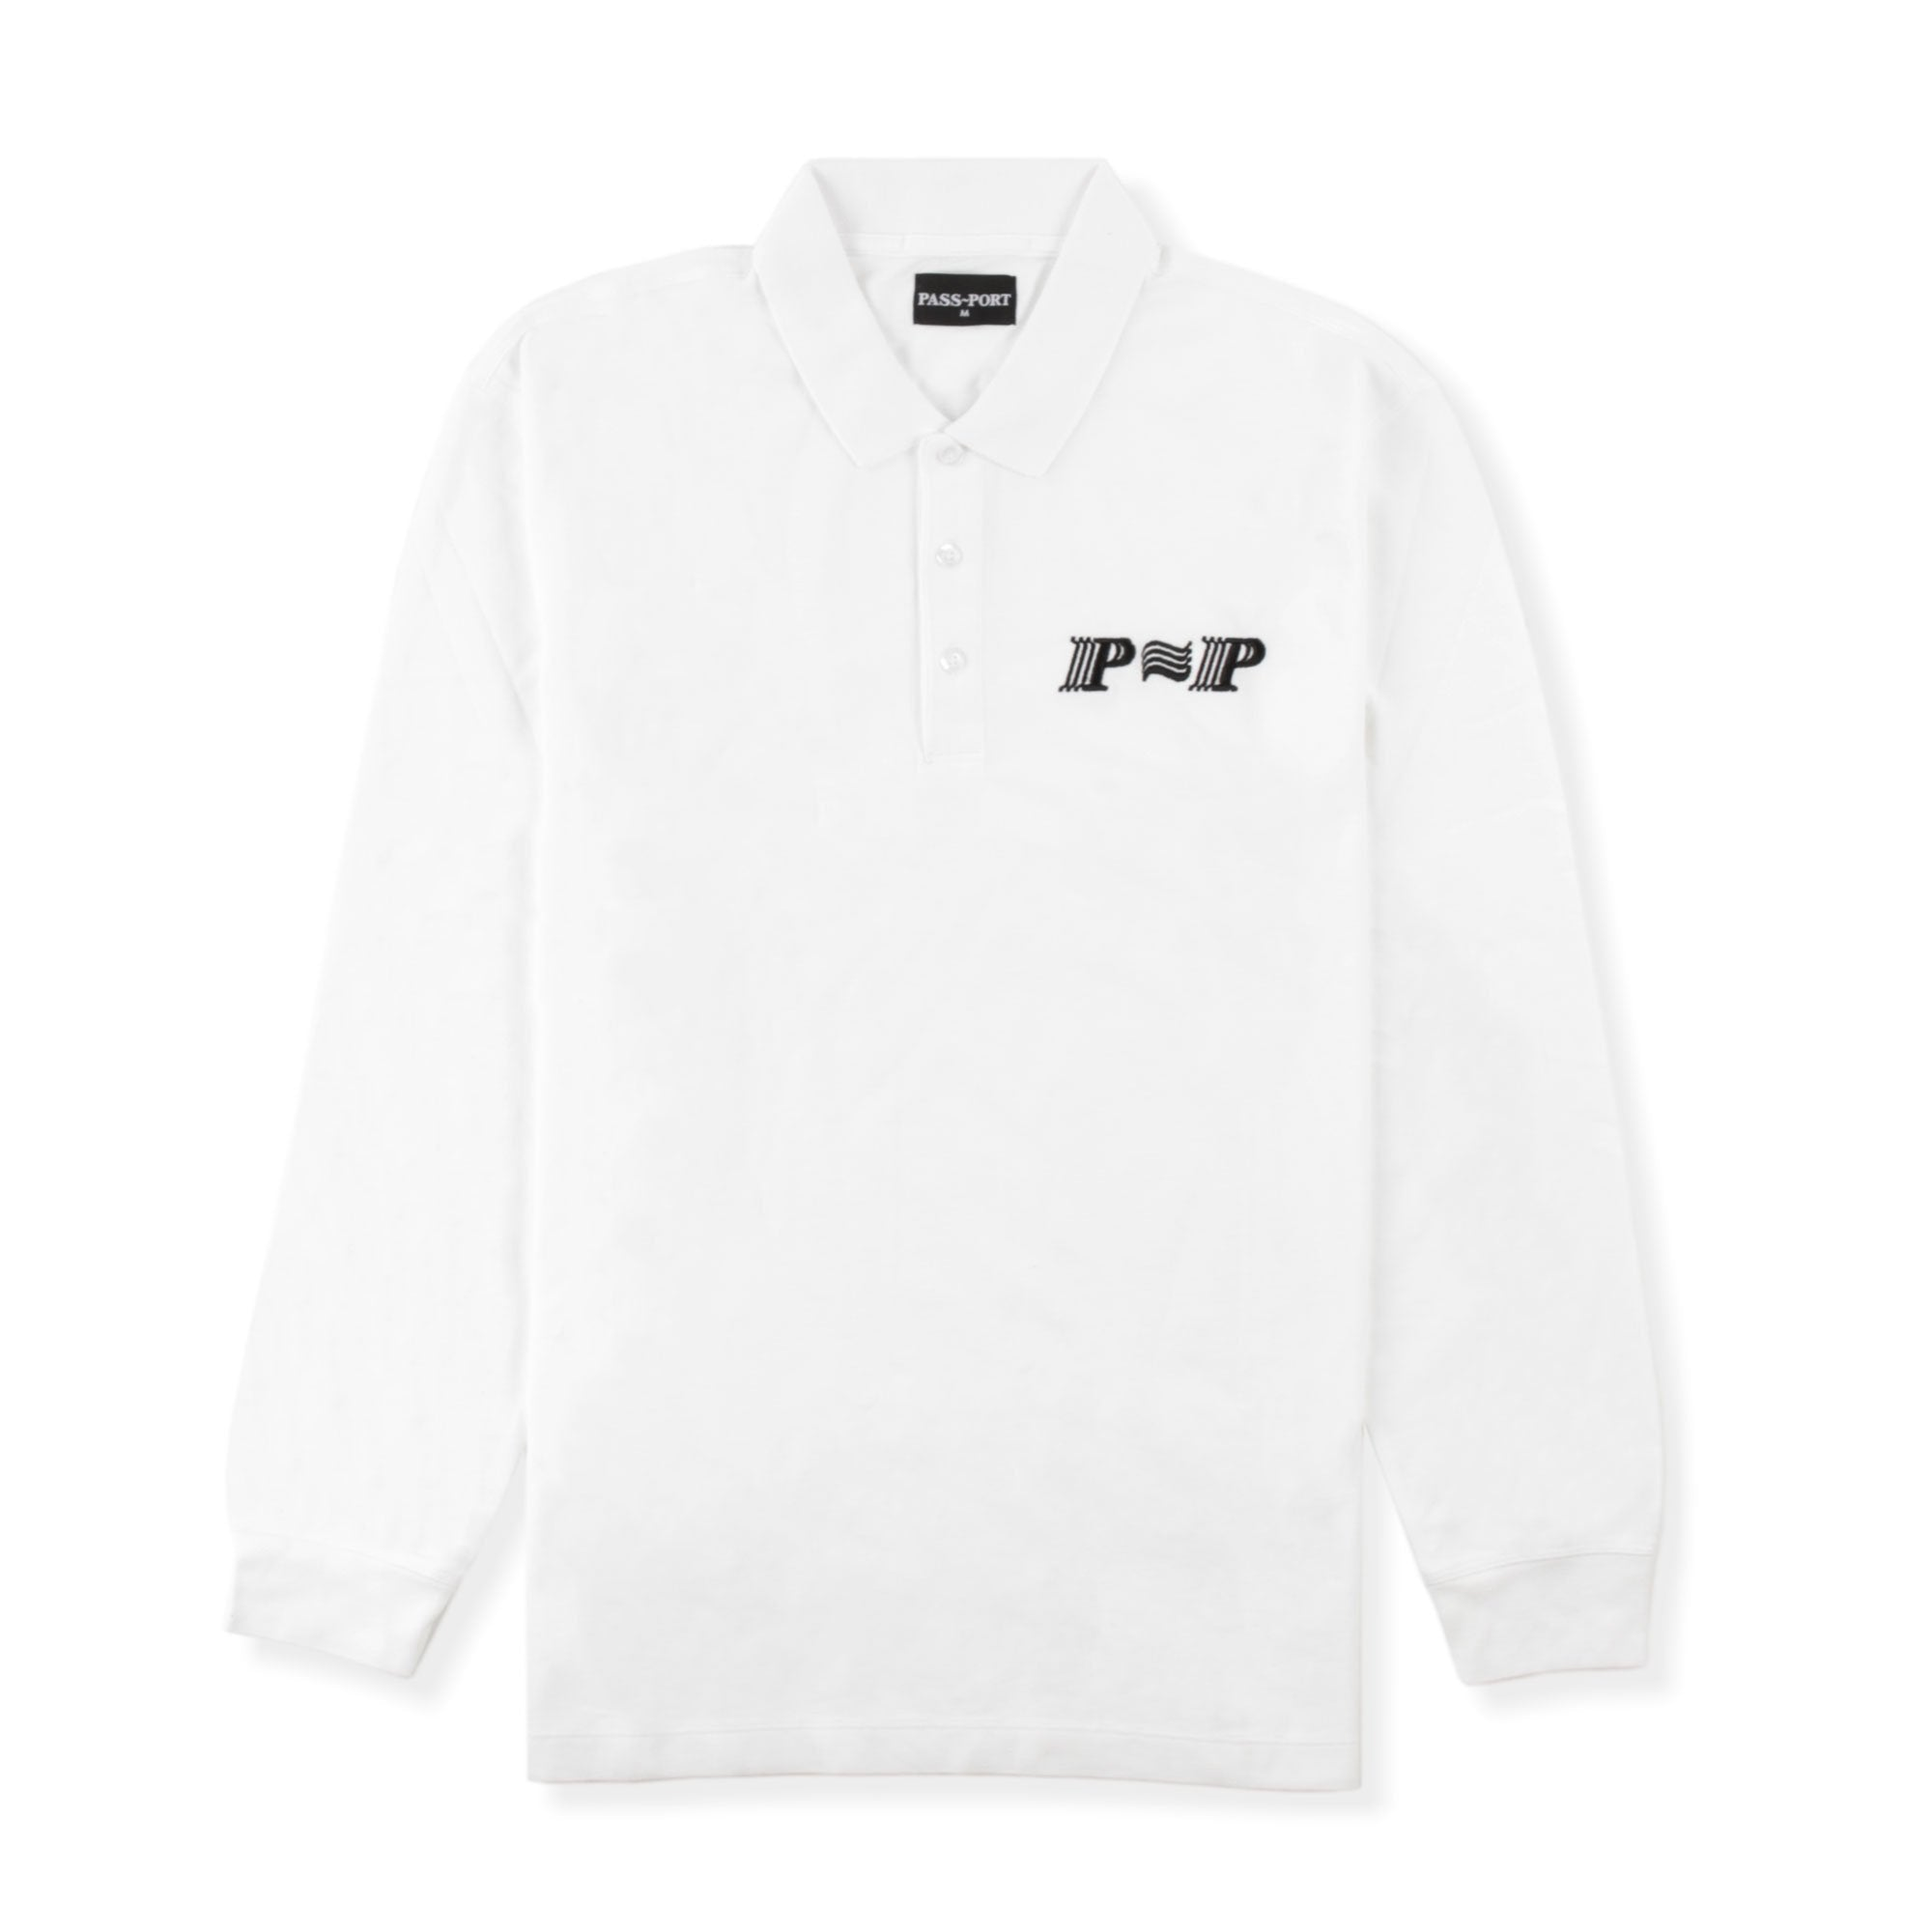 Passport PPP PPP L/S Polo Product Photo #1